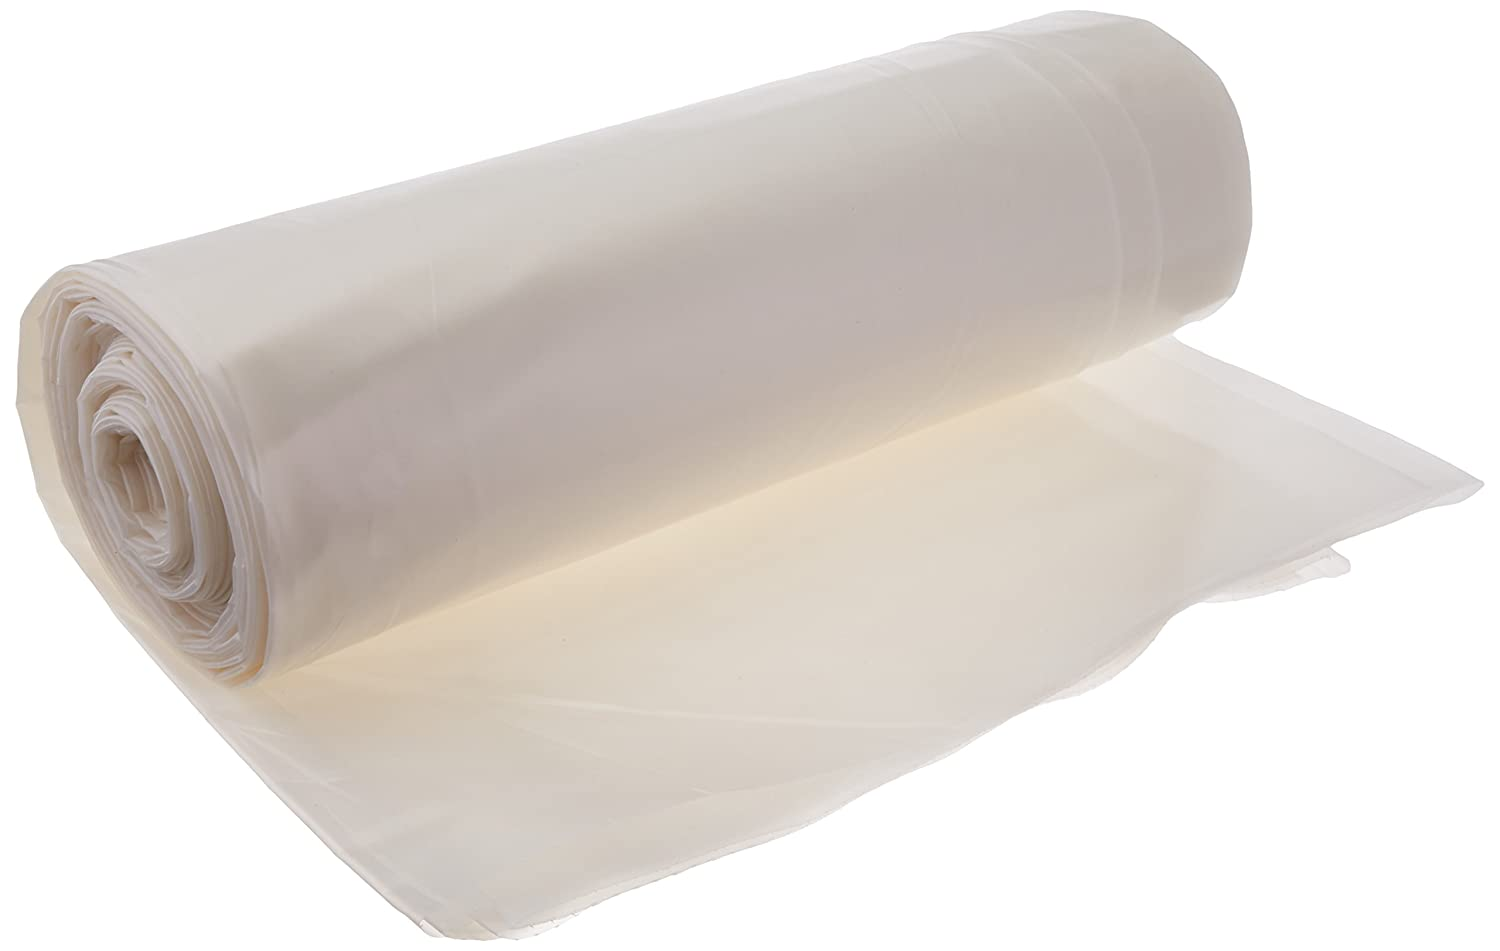 Frost King P1025/6W Polyethylene Sheeting, 10' x 25' x 6 mil., Clear